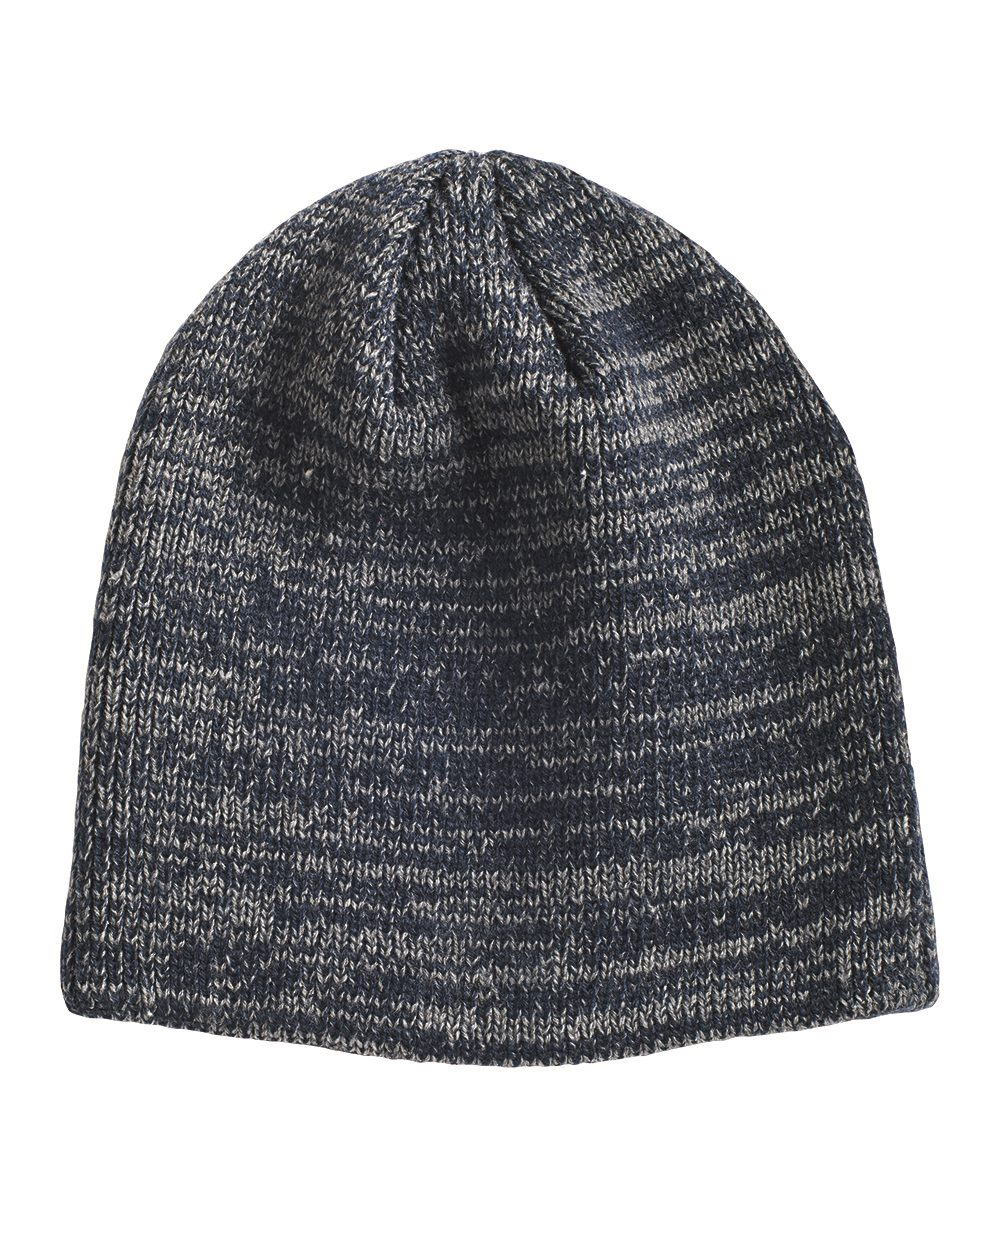 Sportsman SP03 - Marled Knit Beanie